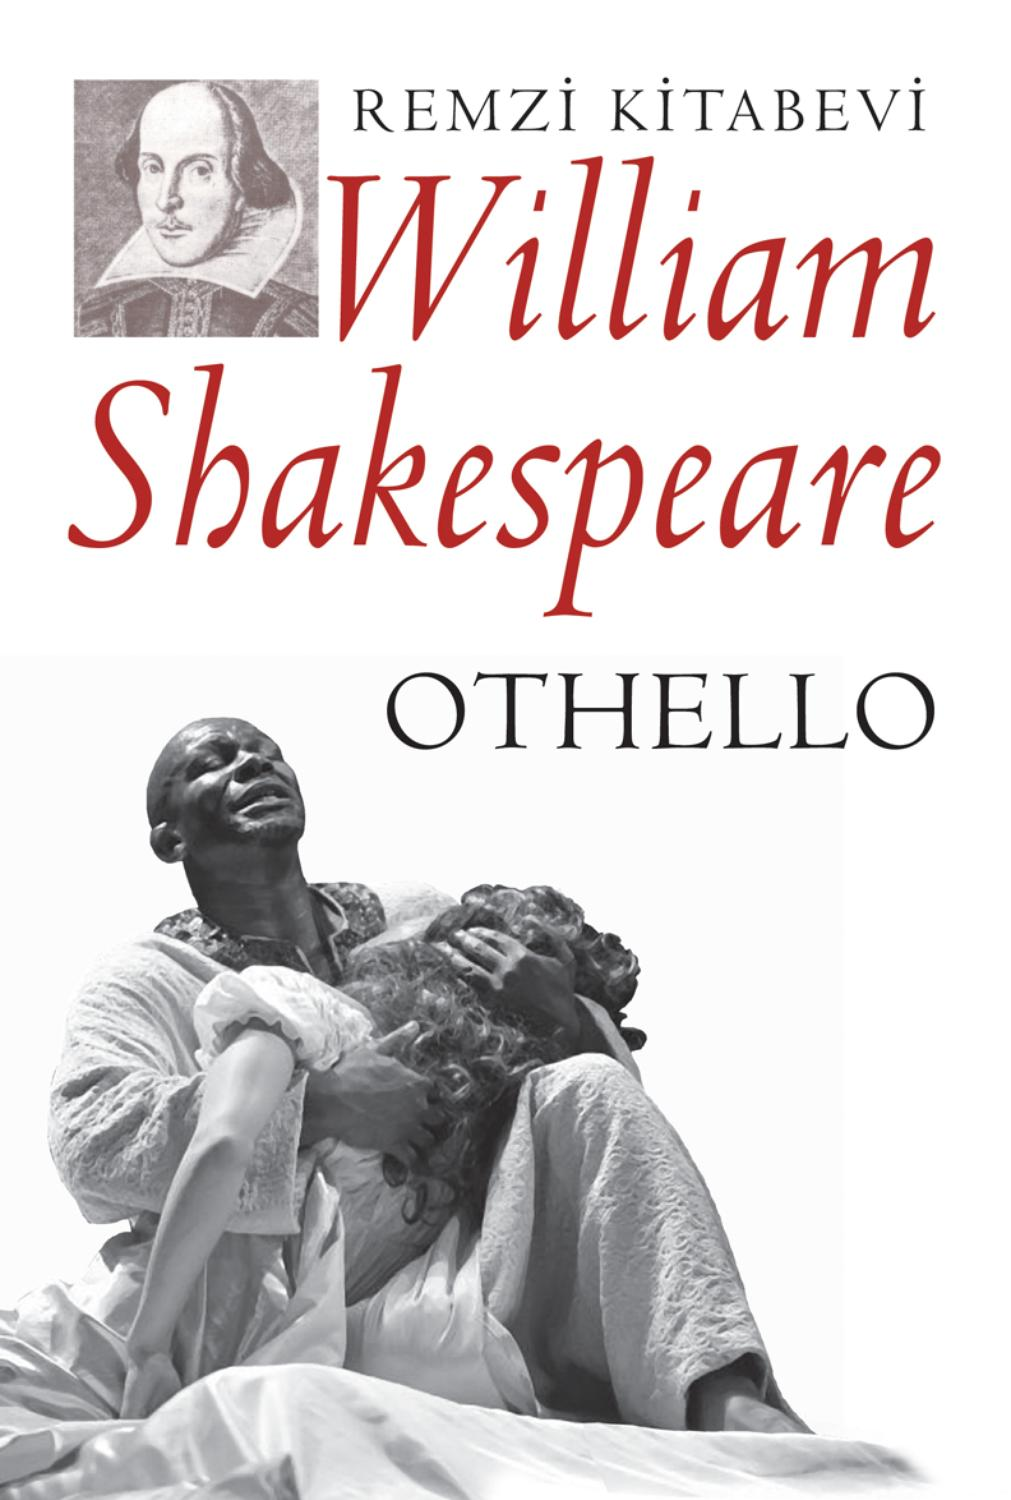 the different elements in othello by william shakespeare The plot of shakespeare's othello is largely taken from giraldi cinthio's gli hecatommithi, a tale of love, jealousy, and betrayal however, the characters, themes, and attitudes of the two works are vastly different, with shakespeare's play being a more involved study of human nature and psychology.